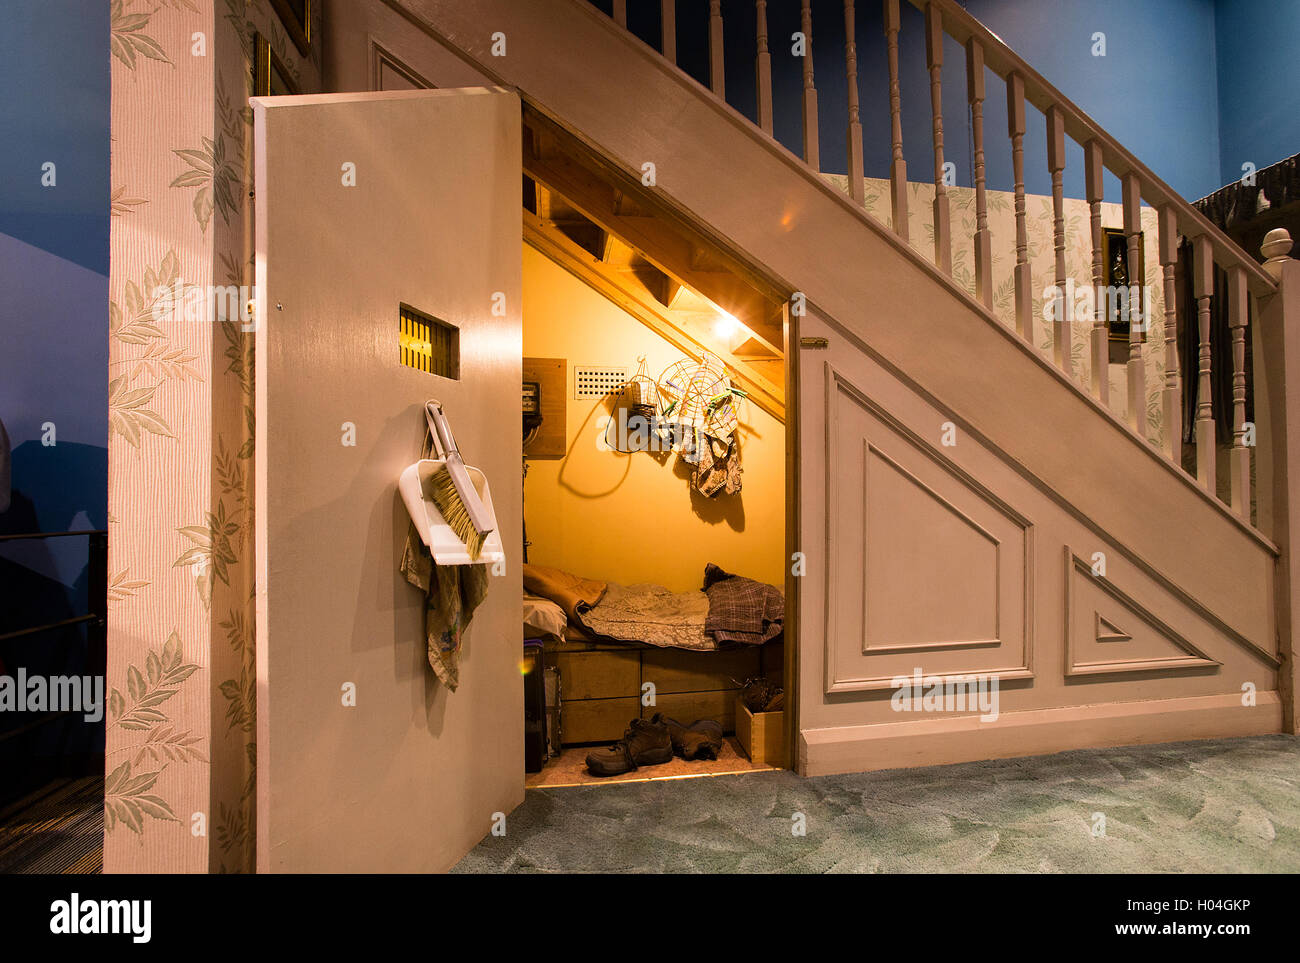 Harry Potter S Bedroom Under The Staircase At Warner Bros Studios Stock Photo Alamy